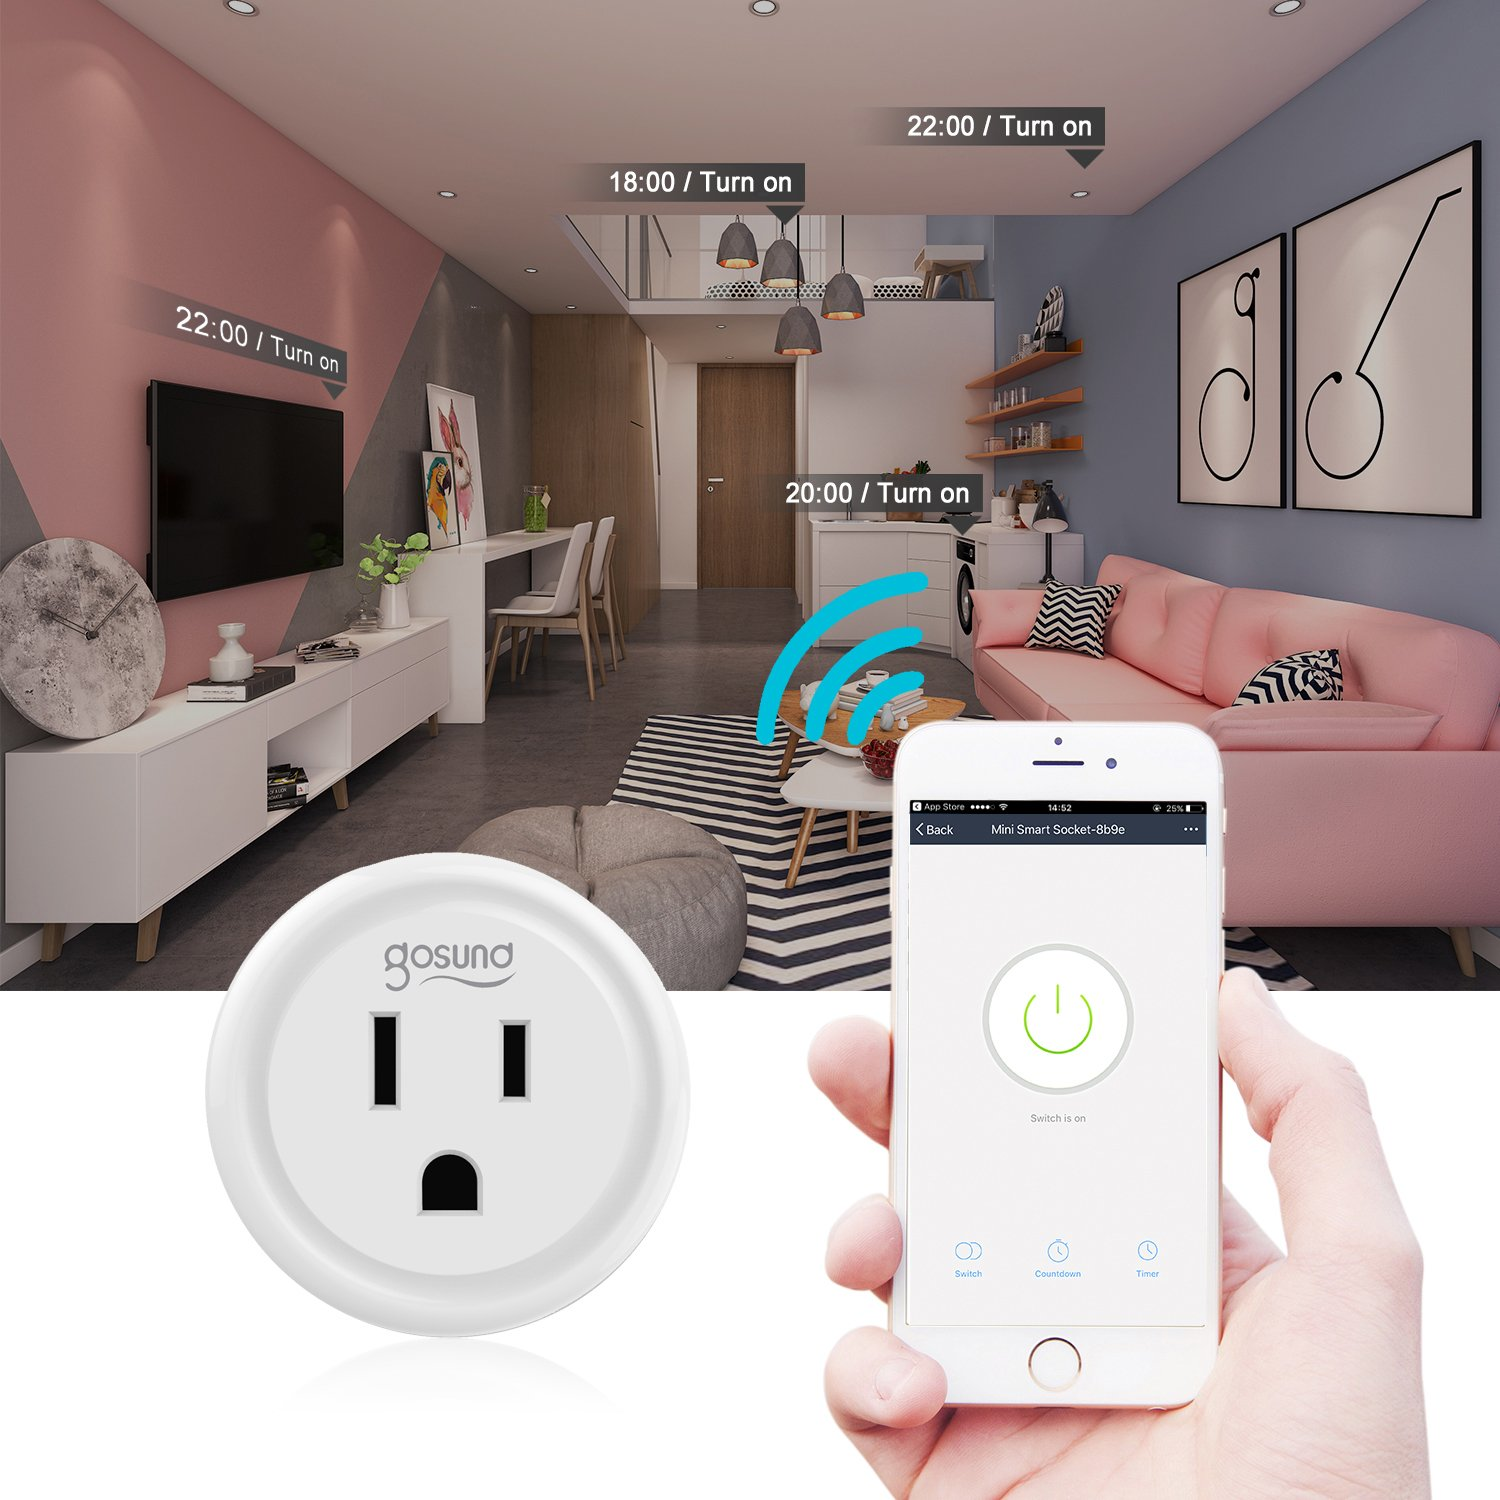 Smart plug, Gosund Mini Wifi Outlet Works With Alexa, Google Home & IFTTT, No Hub Required, Remote Control Your Home Appliances from Anywhere, ETL Certified,Only Supports 2.4GHz Network(4 Pieces) by Gosund